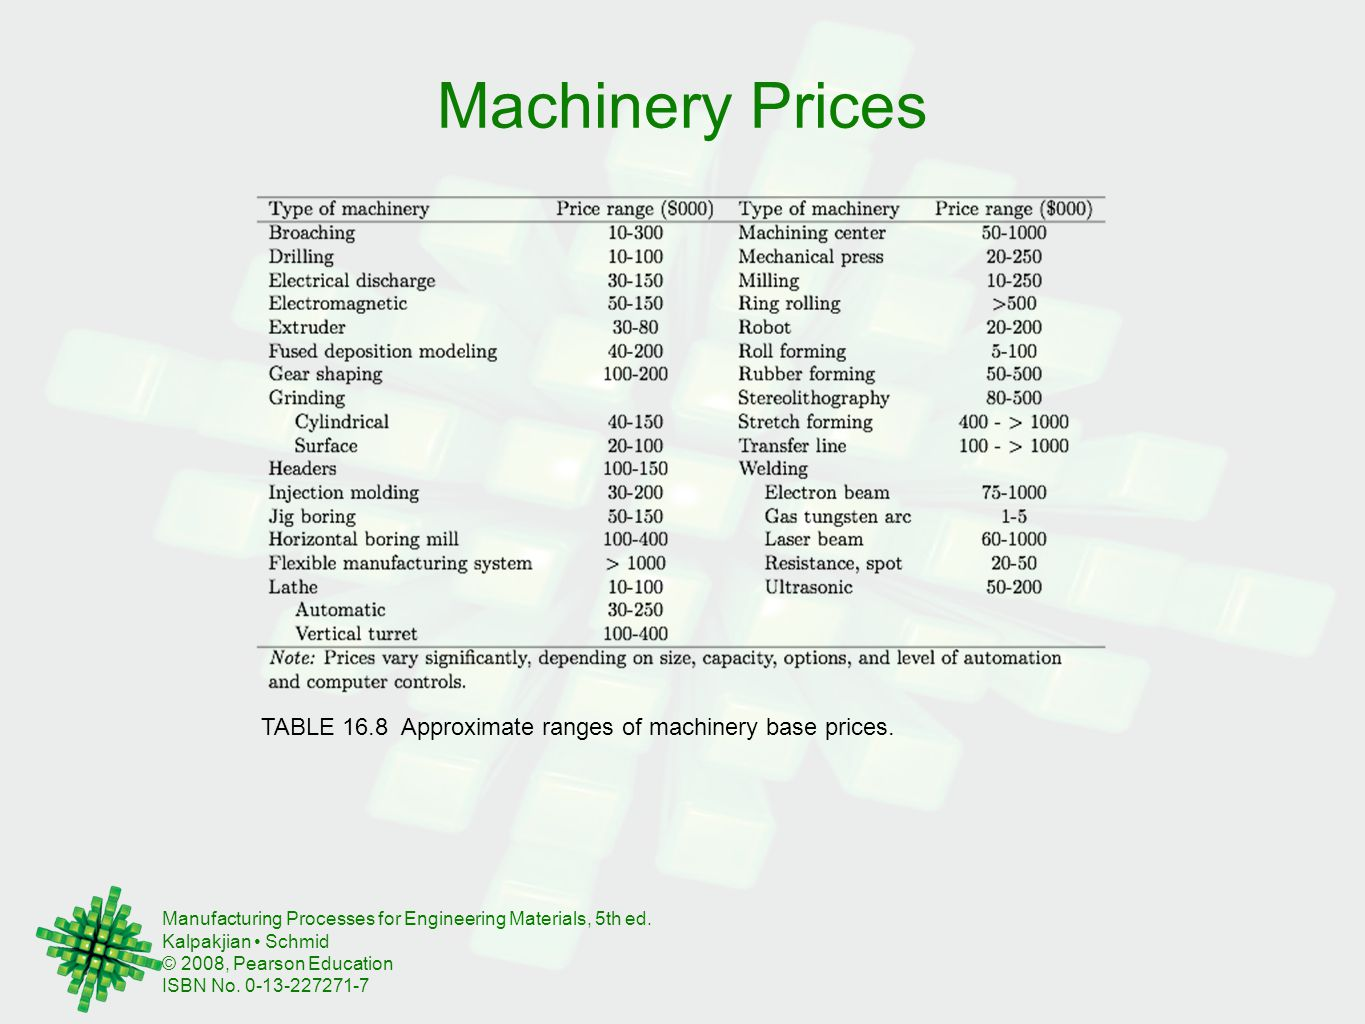 Machinery Prices TABLE 16.8 Approximate ranges of machinery base prices.